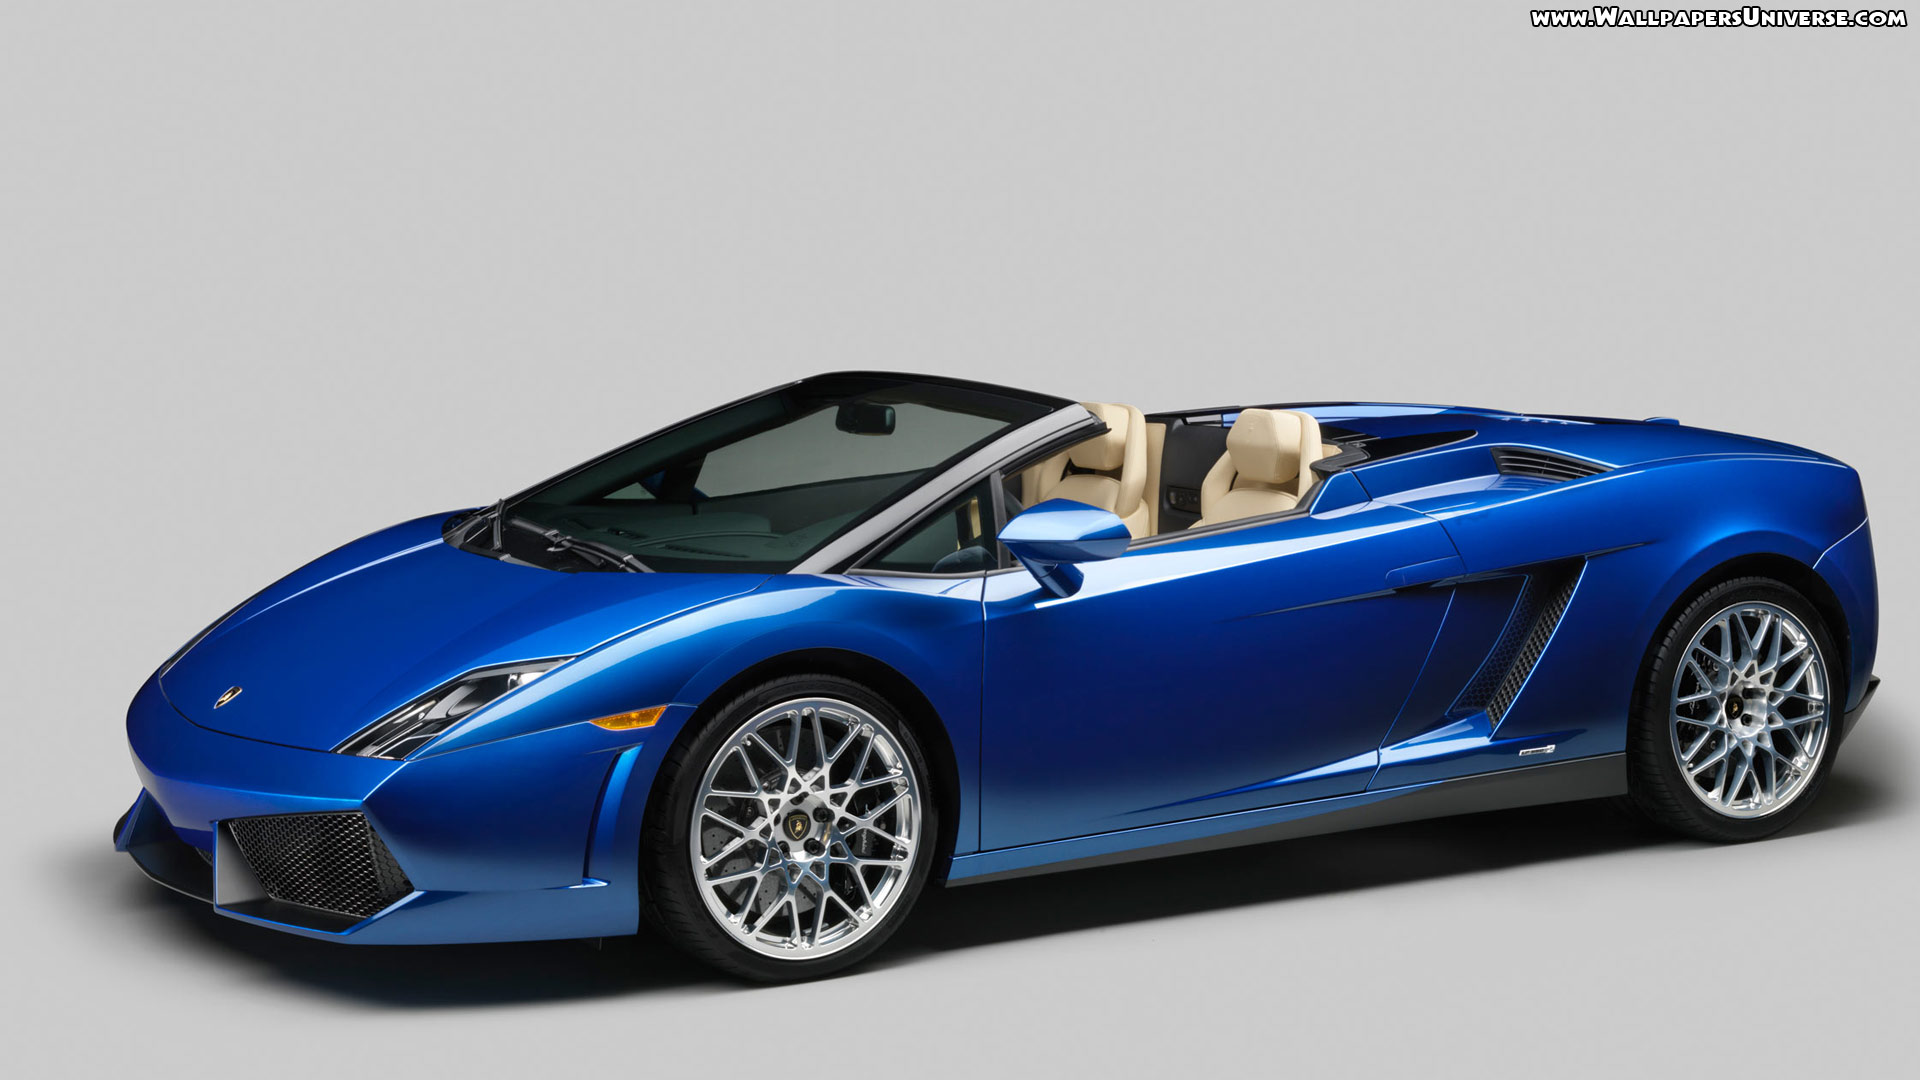 blue lamborghini gallardo superleggera lamborghini gallardo superleggera wallpaper , lamborghini gallardo